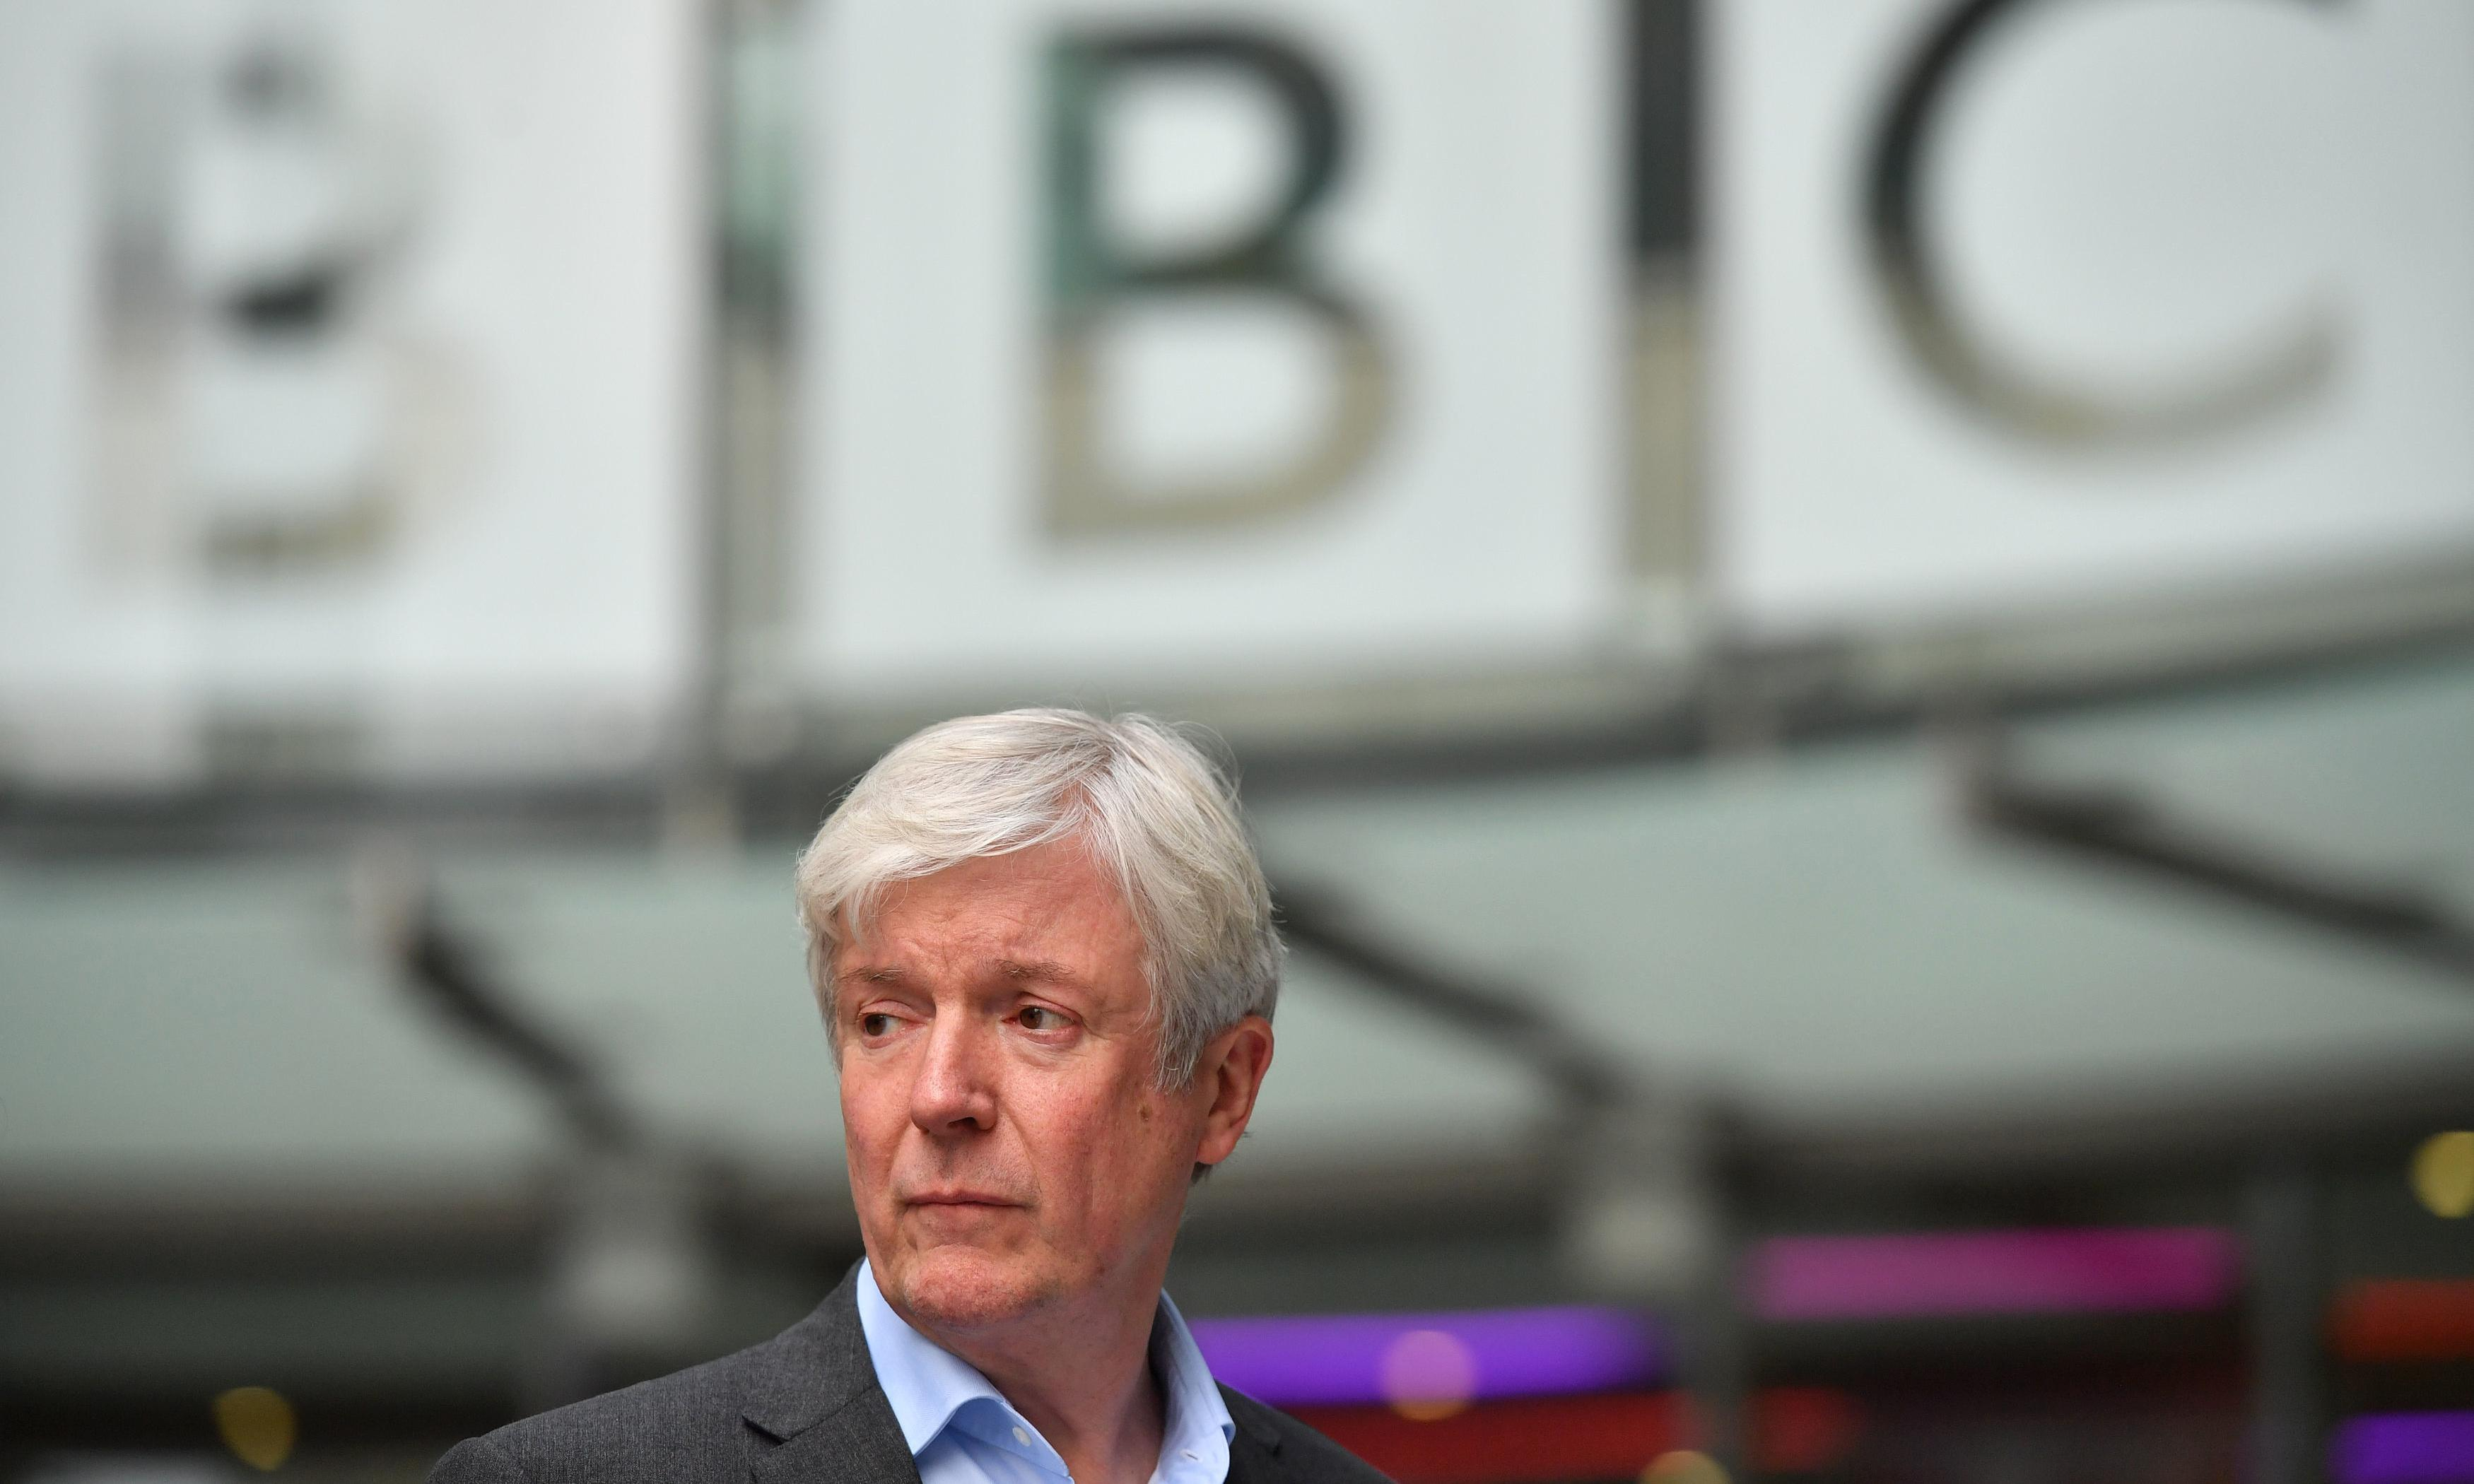 TV industry entering 'second wave of disruption', claims BBC chief